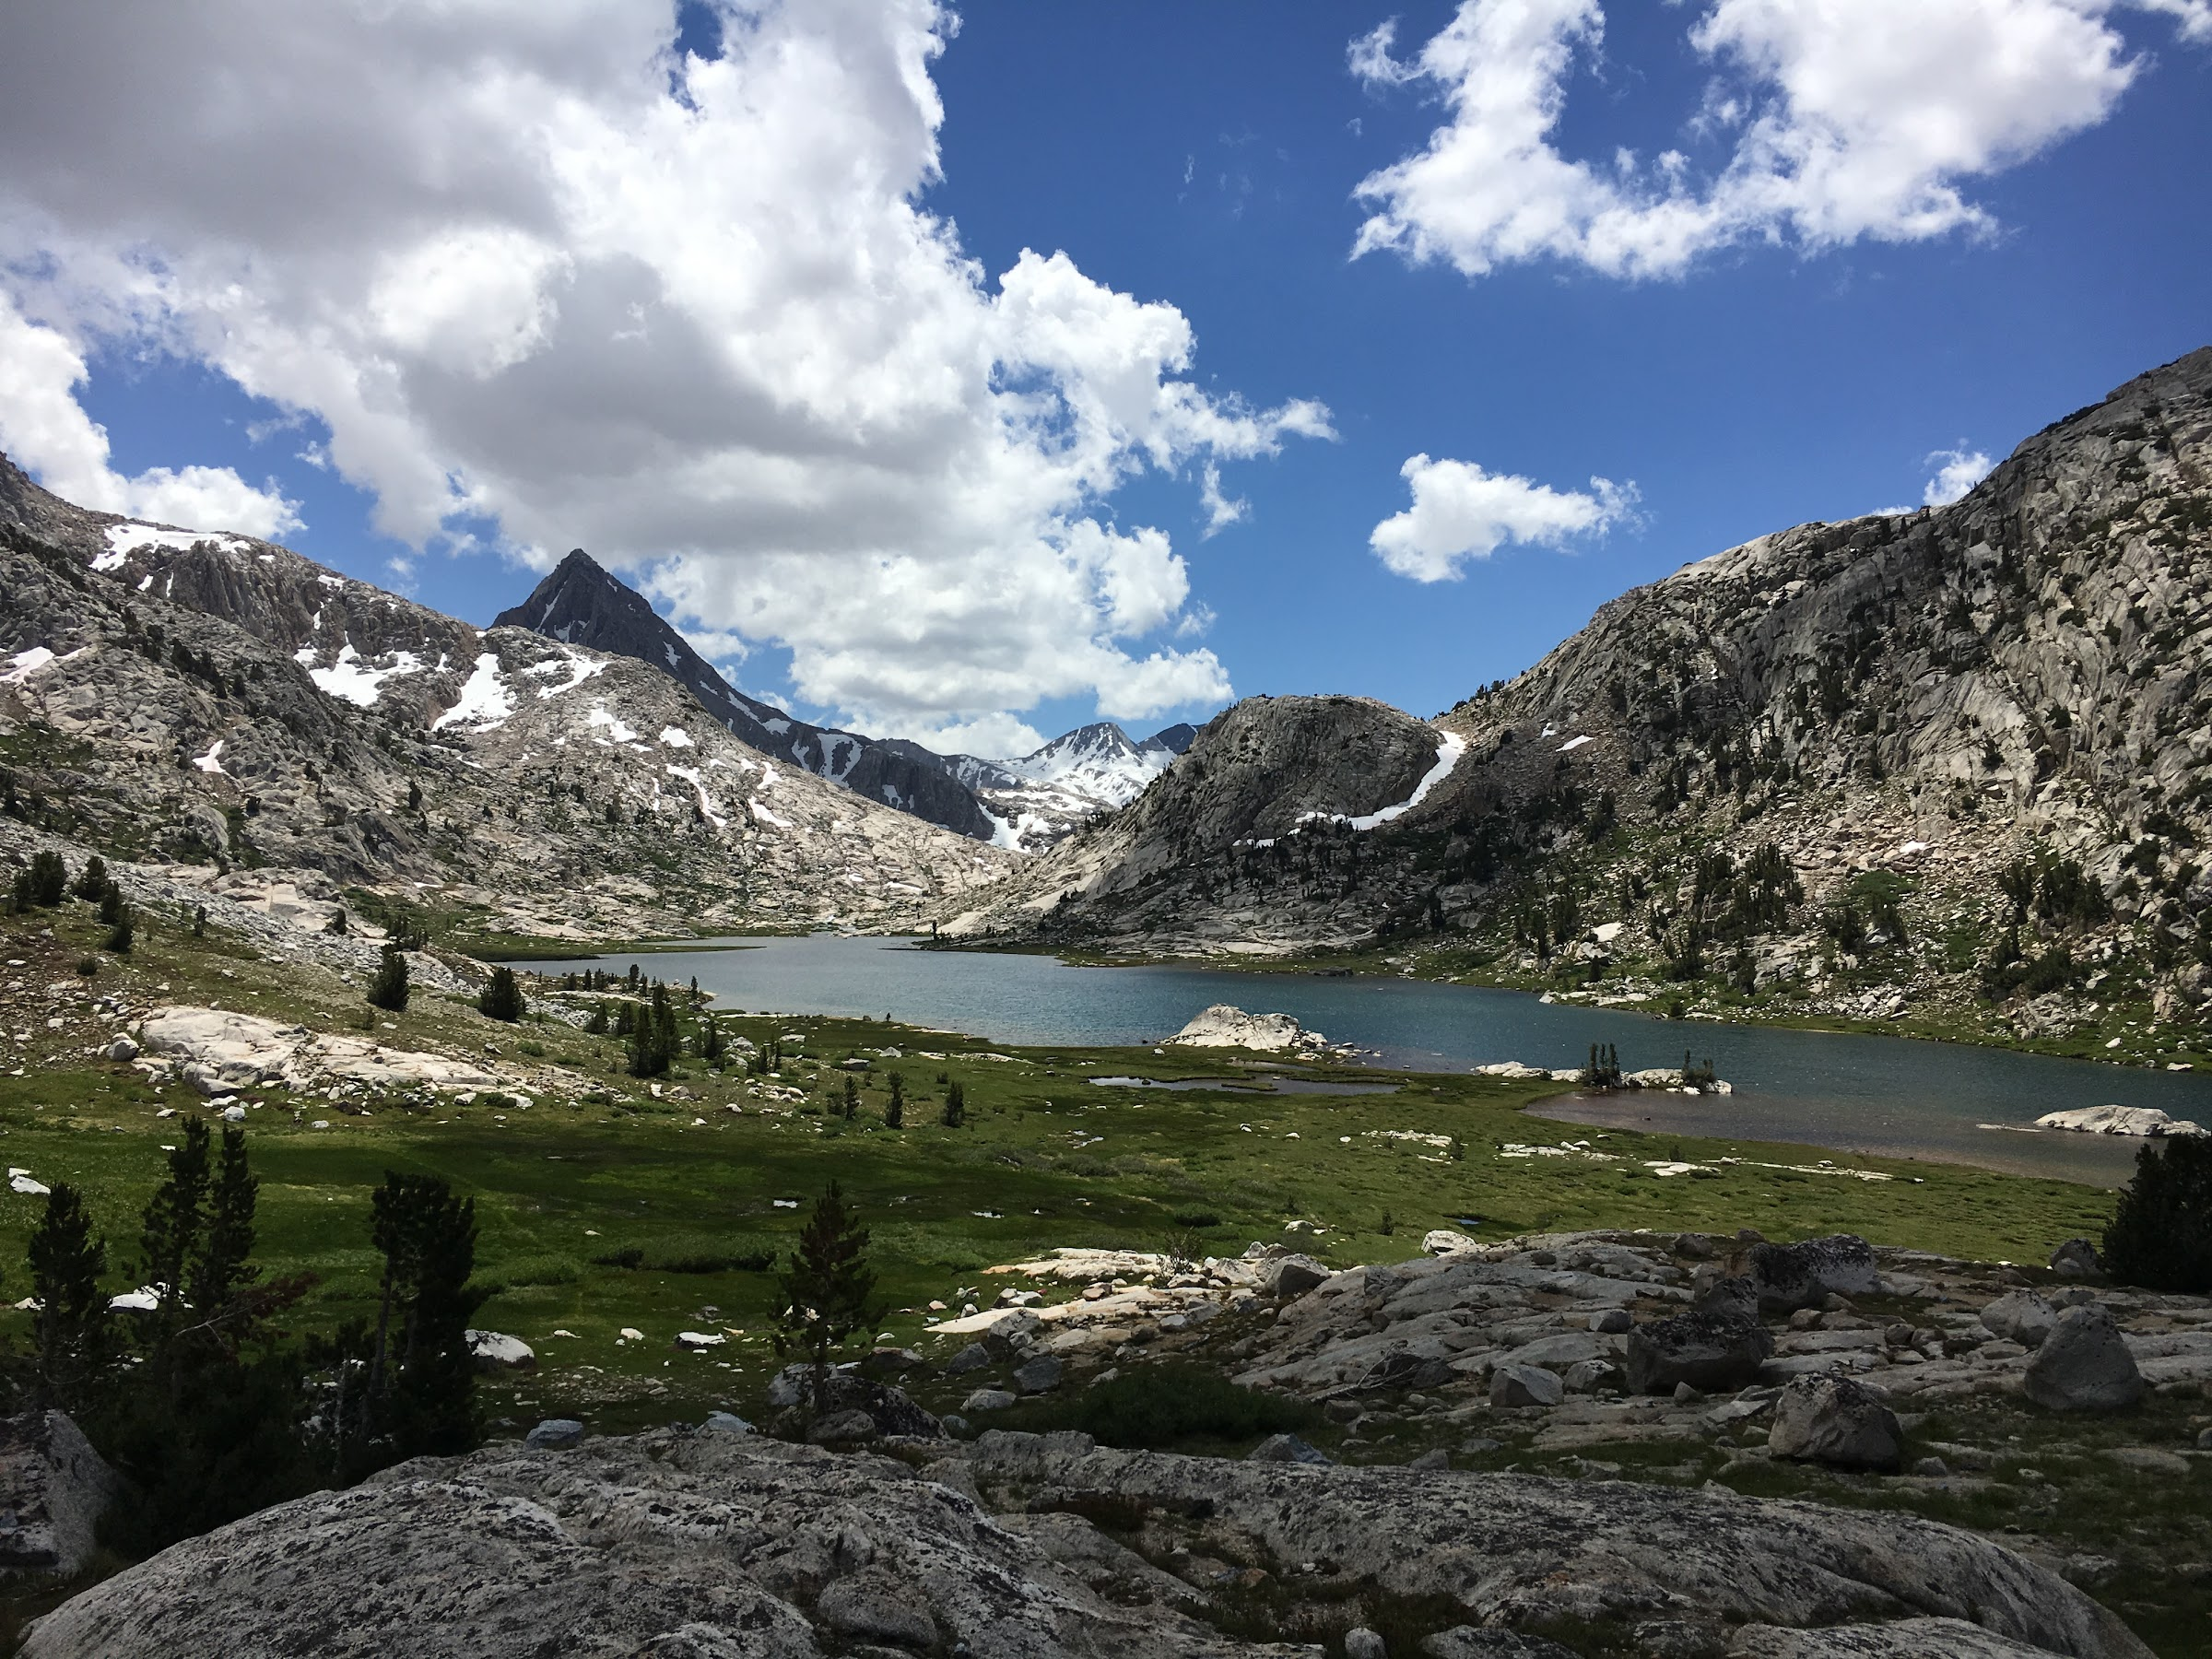 Stunning Evolution Lake and the view south to the Goddard Divide